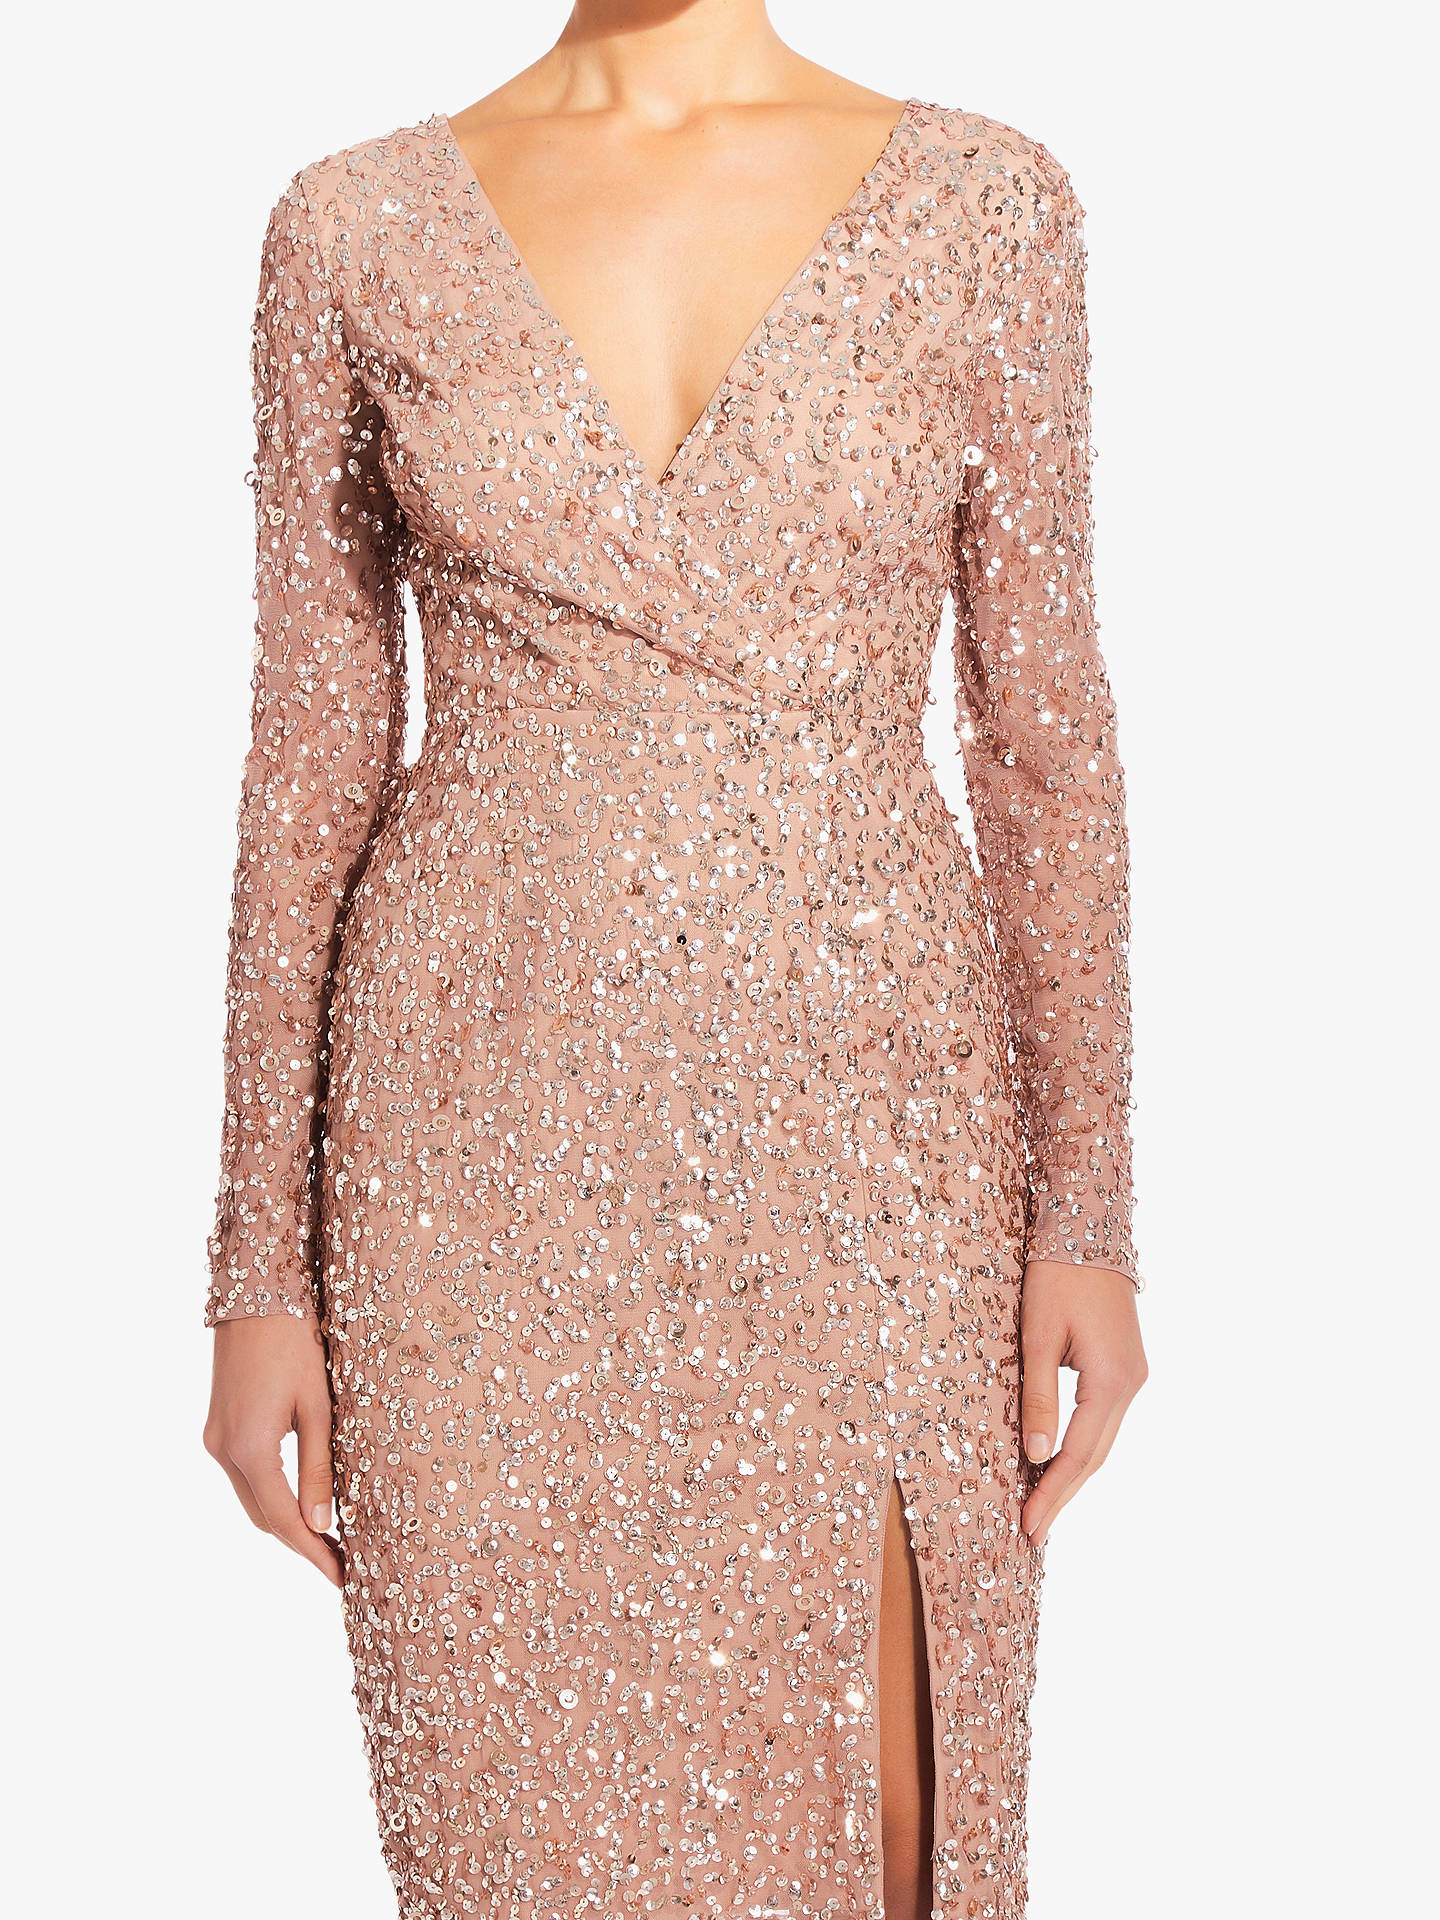 0f13d64873631 Adrianna Papell Beaded Wrap Dress, Rose Gold